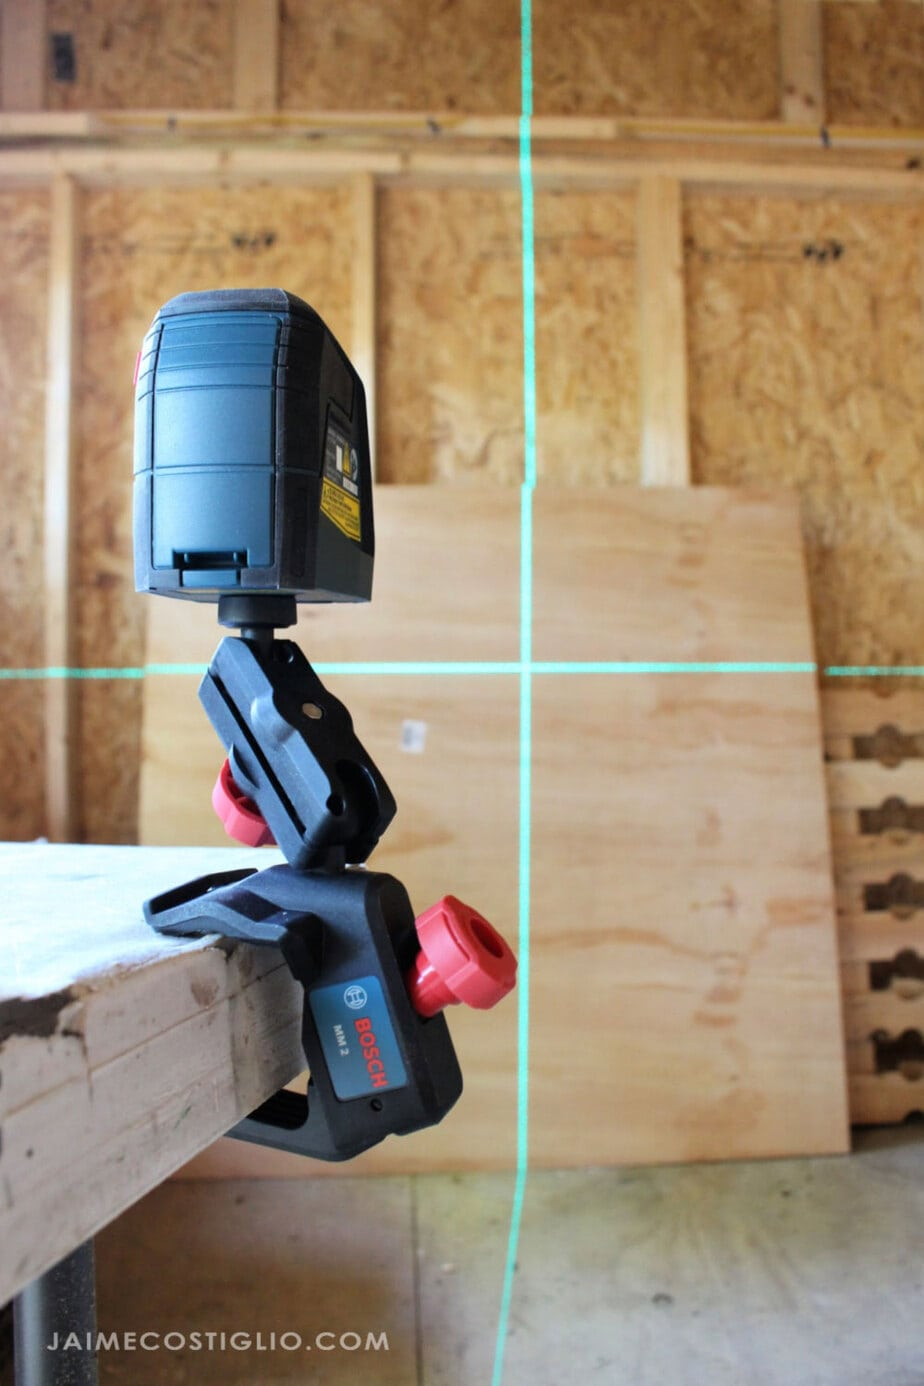 bosch laser level secured to table